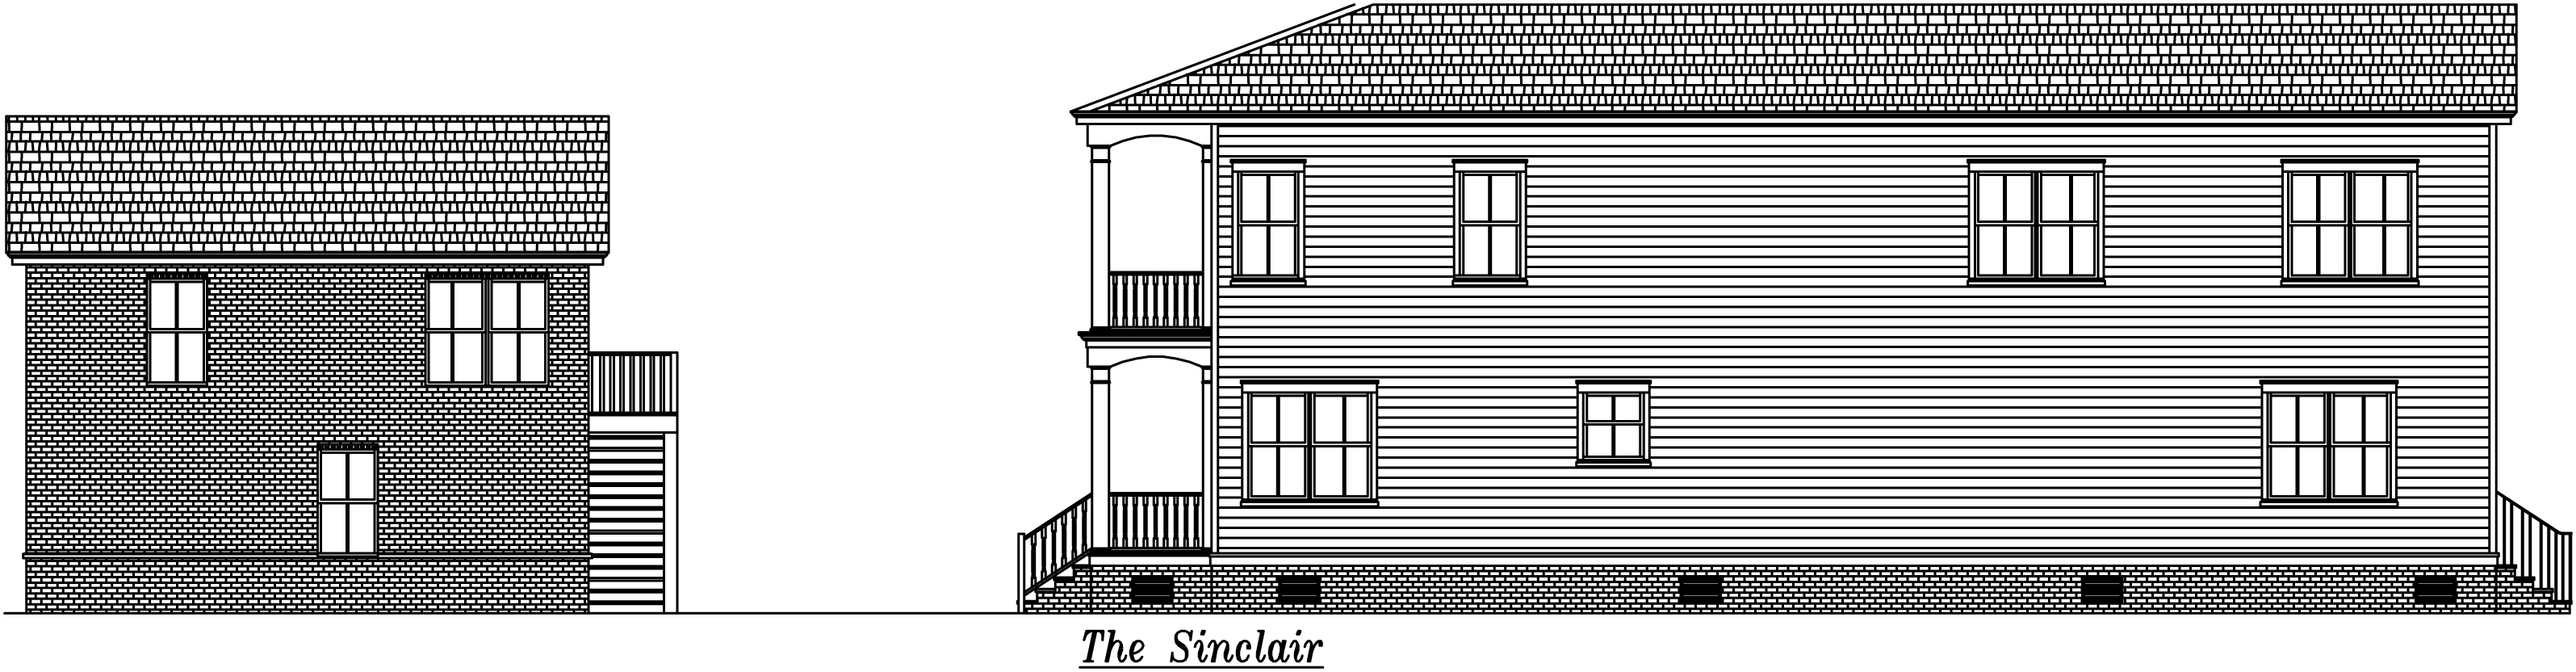 Sinclair Left Elevation